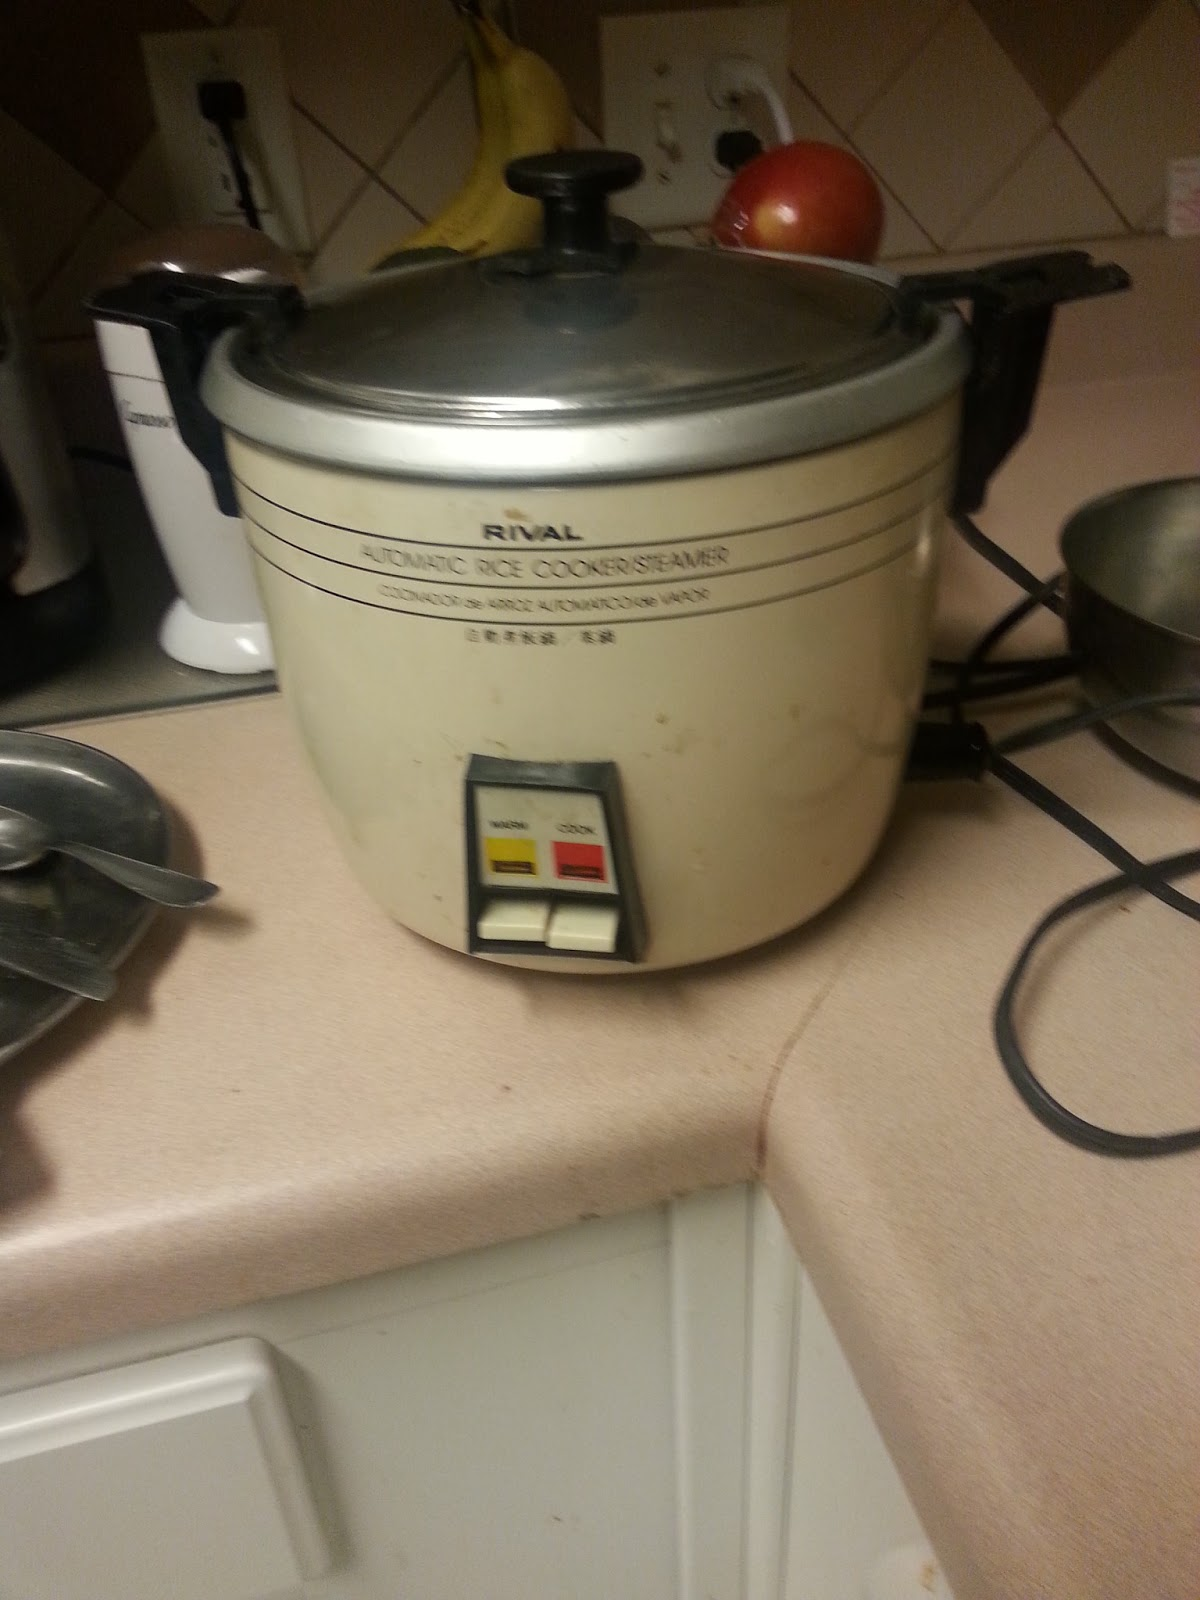 4356 Rival Rice Cookersteamer Four Walls Music Reviews